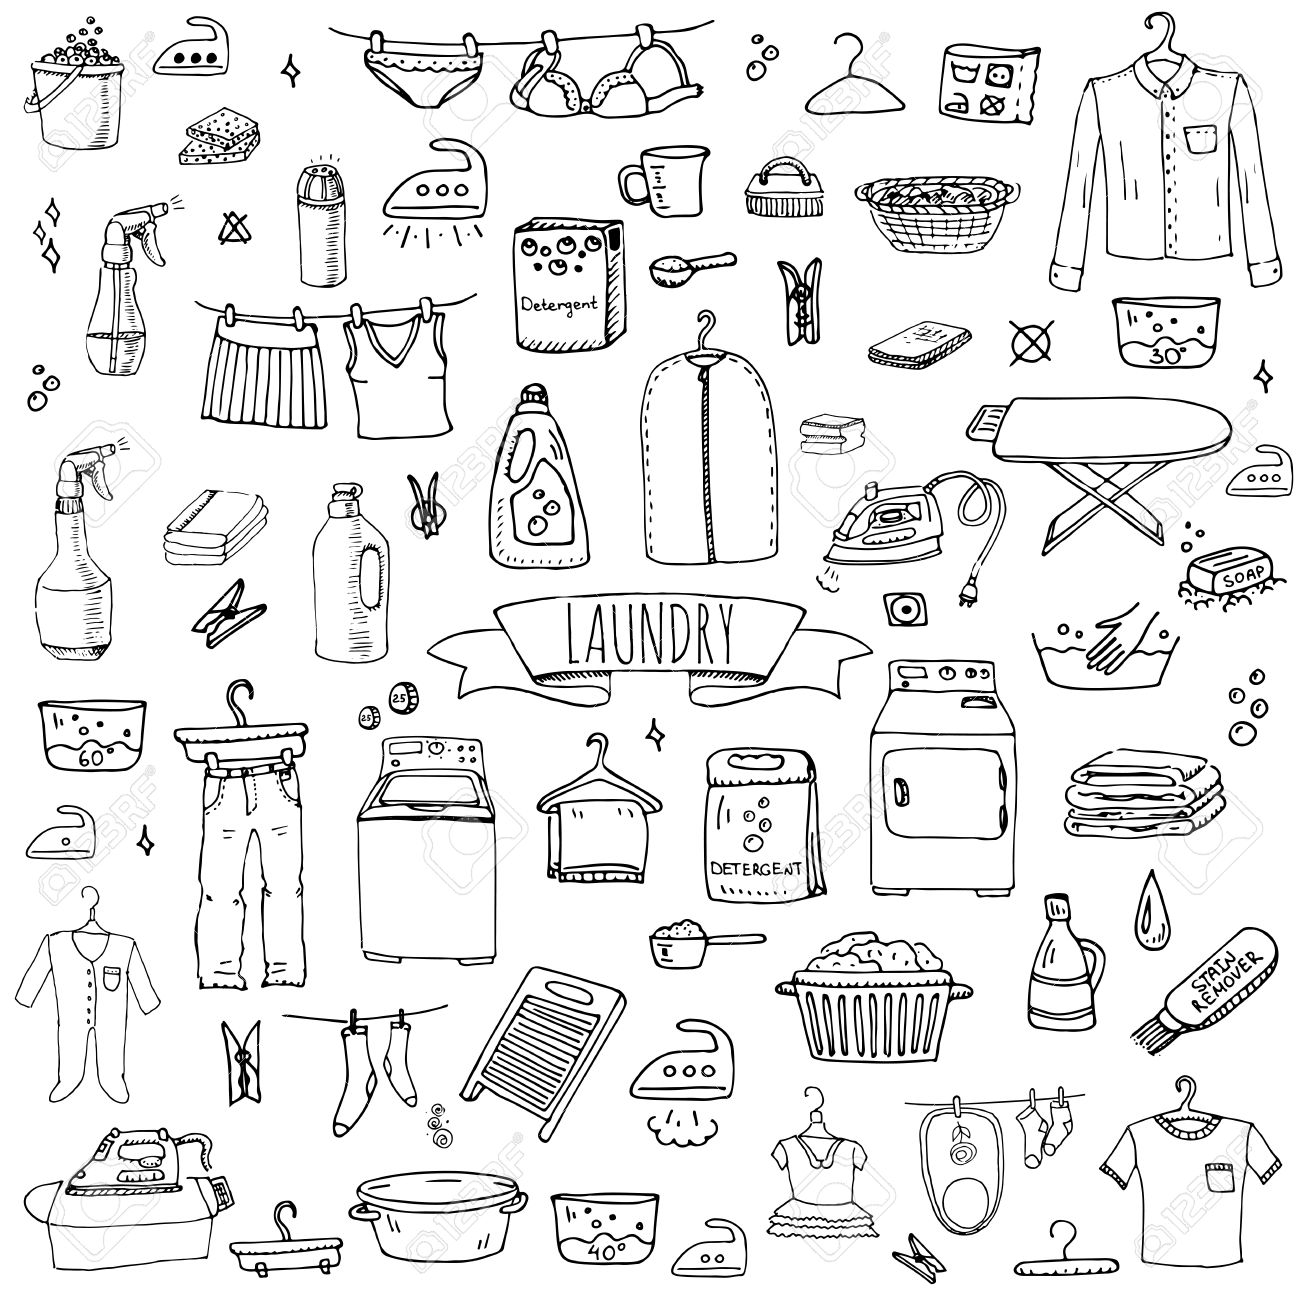 Hand drawn doodle Laundry set Vector illustration washing icons Laundry concept elements Cleaning business symbols collection Housework Equipment and facilities for washing, drying and ironing clothes - 58069190